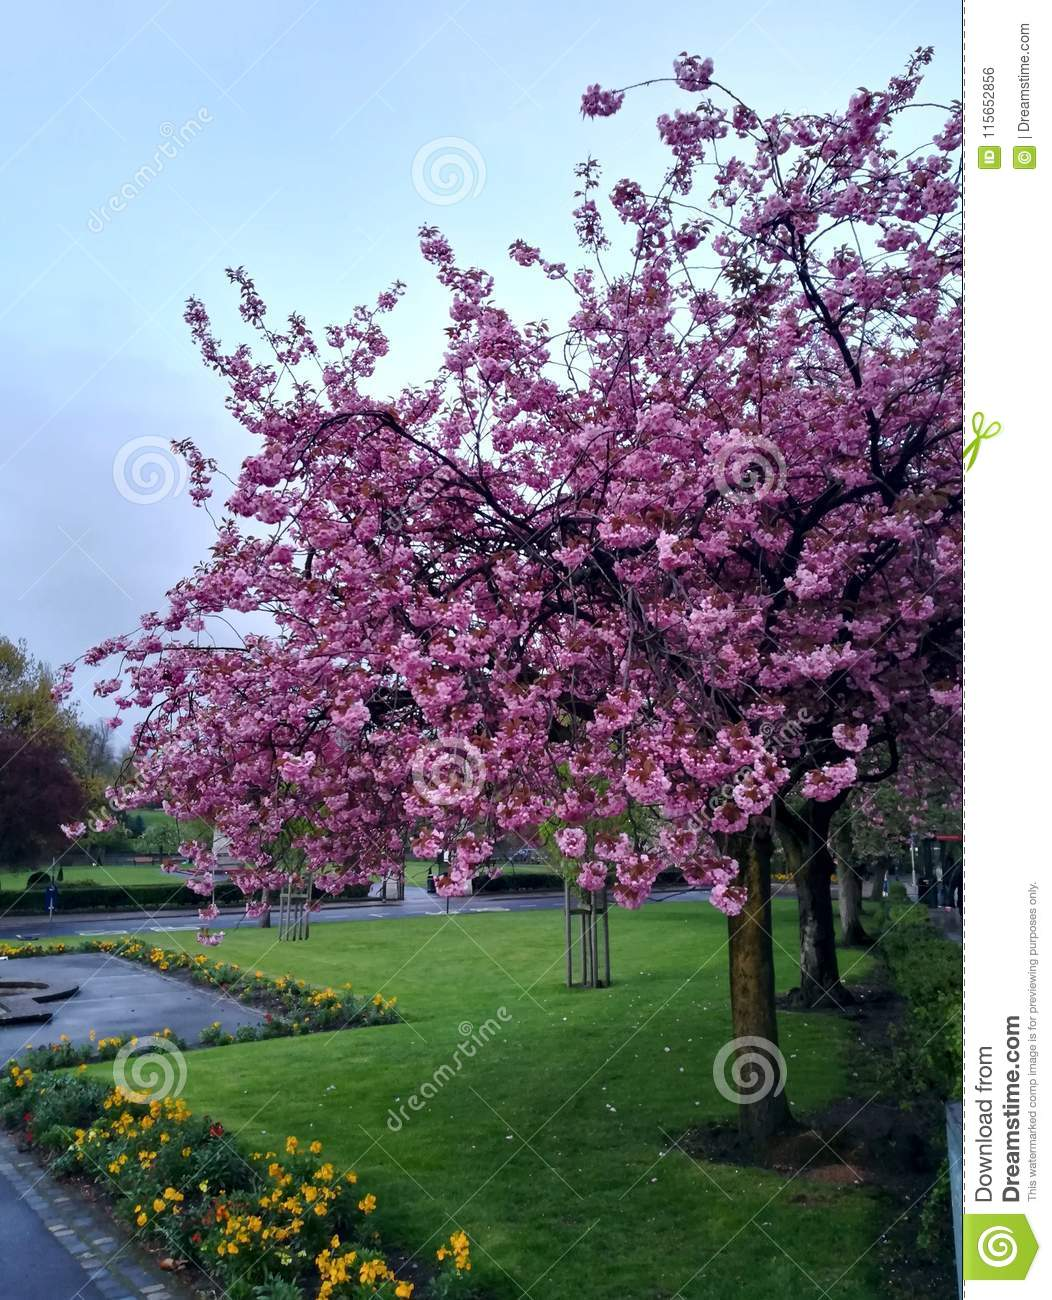 Cherry blossom tree with pink flower